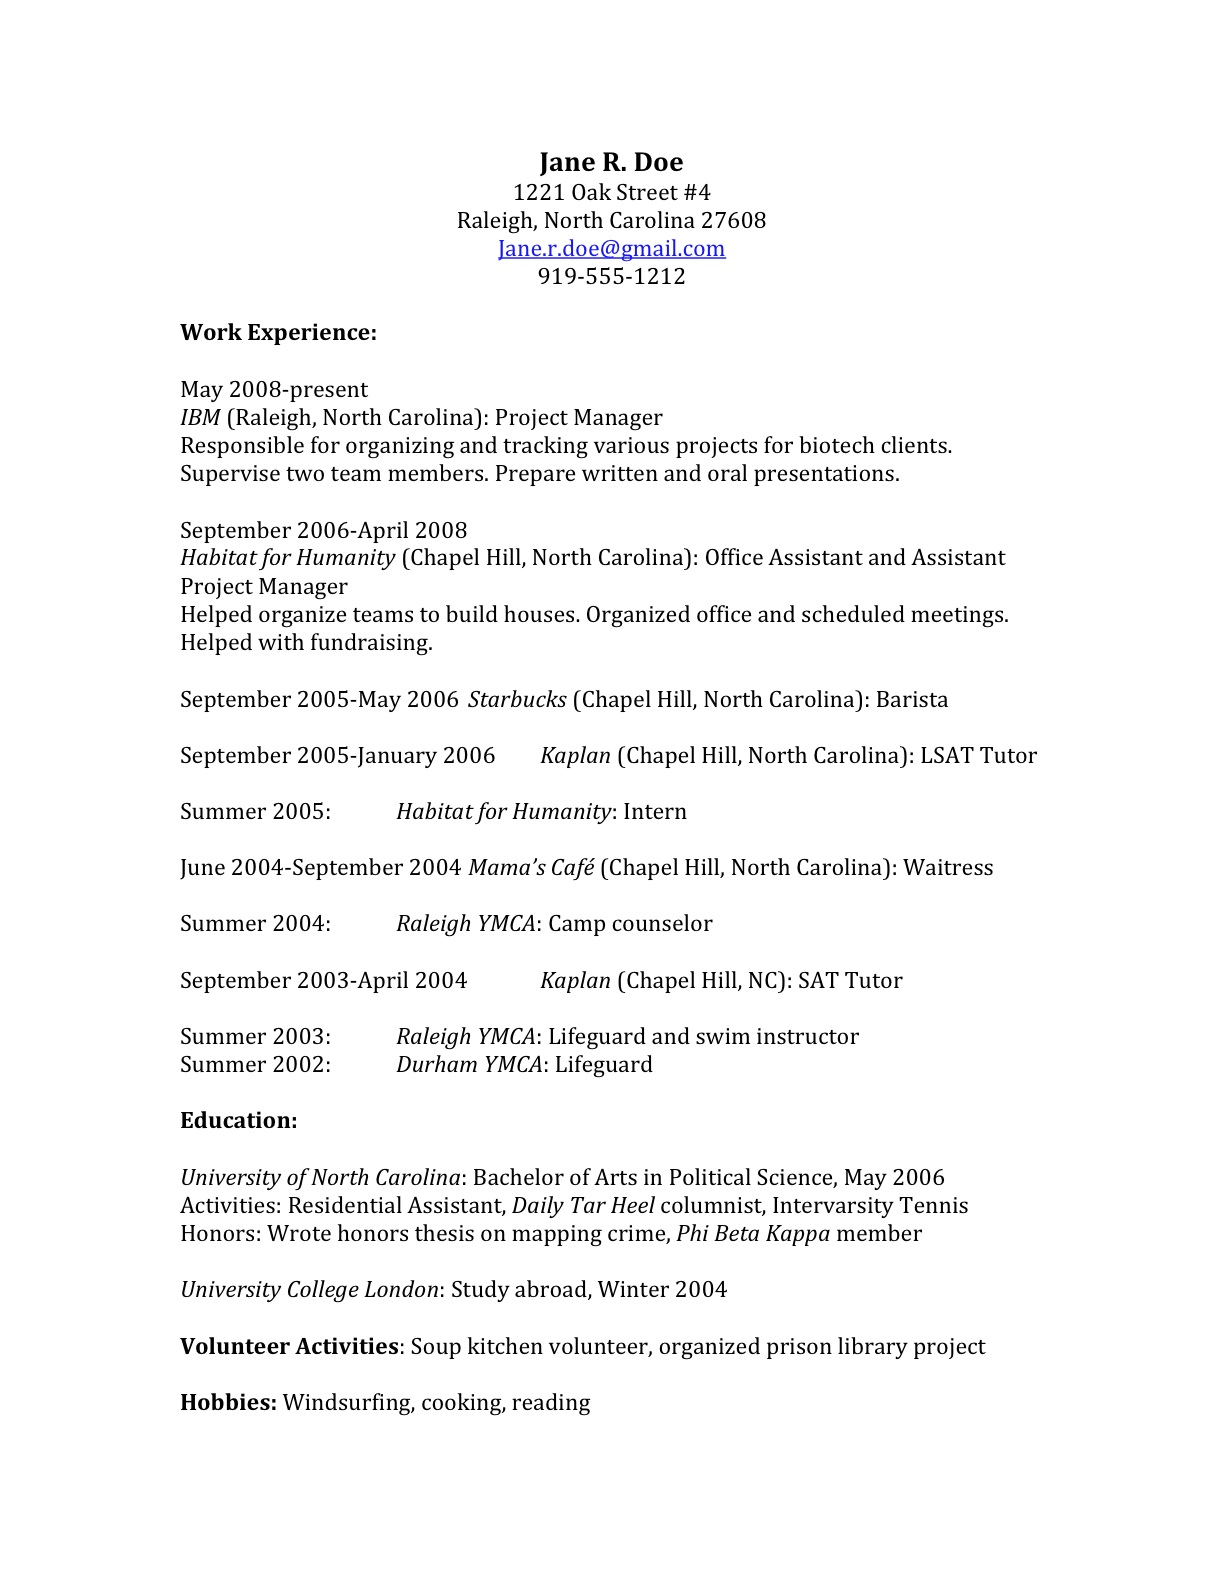 Resume Format Law School Jane Doe's starting resume